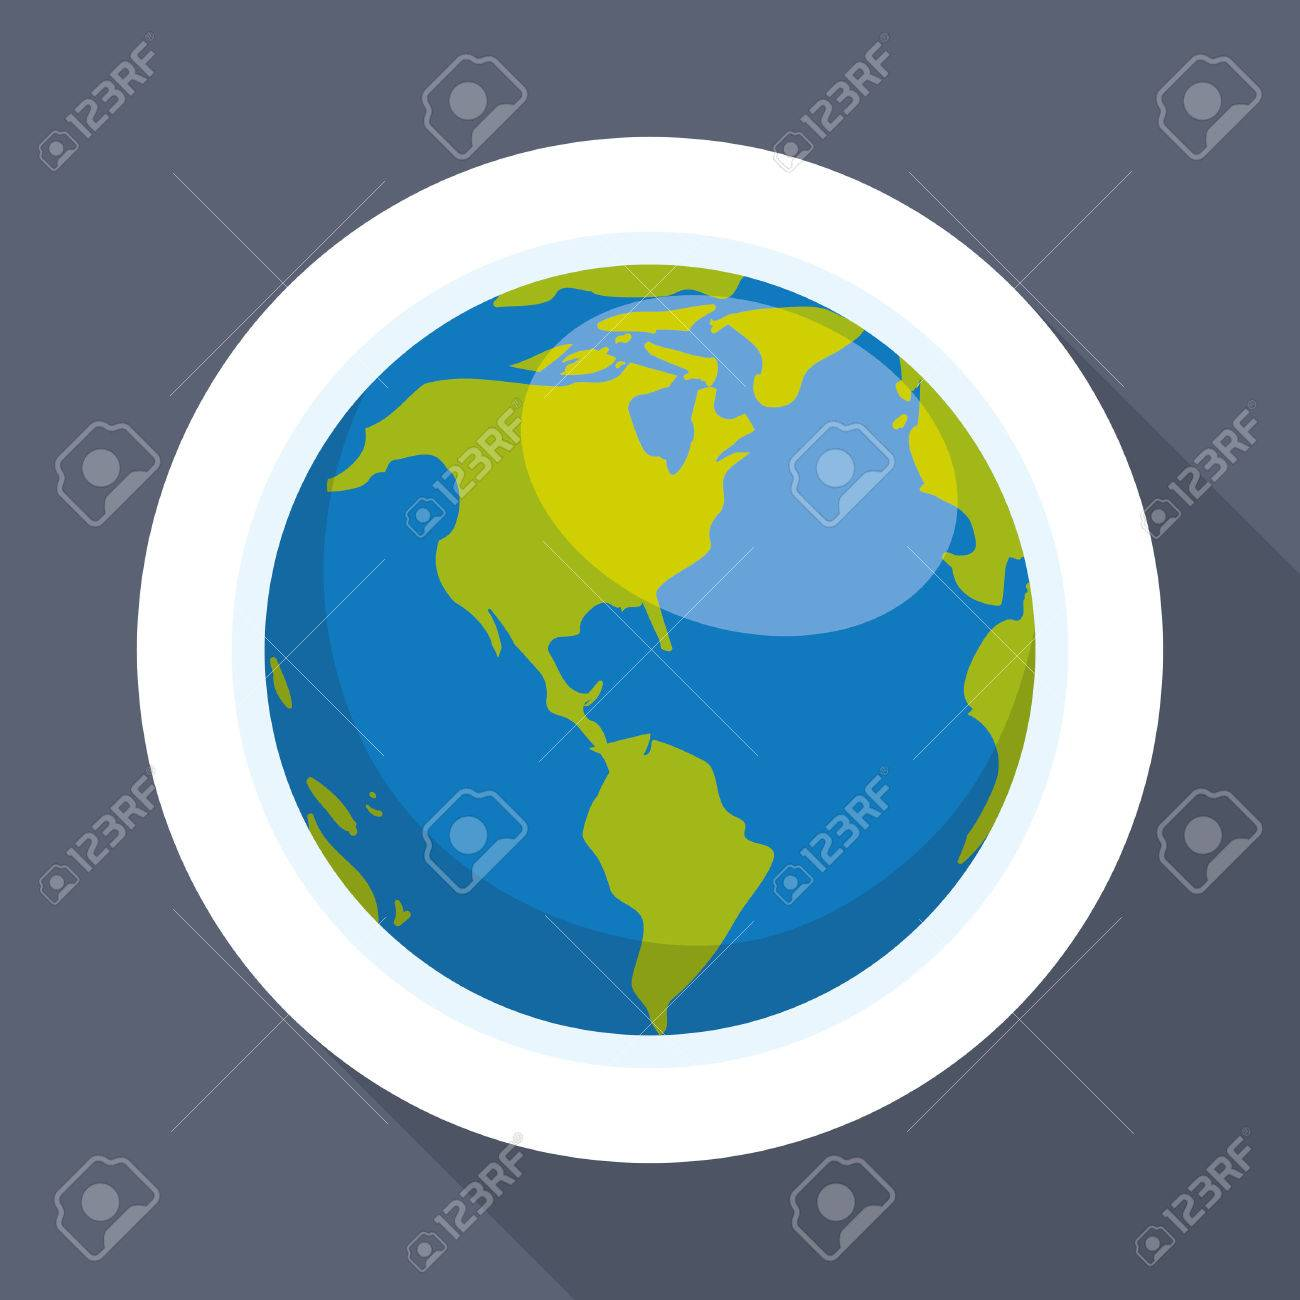 Planet concept with icon design, vector illustration 10 eps graphic. - 53626653